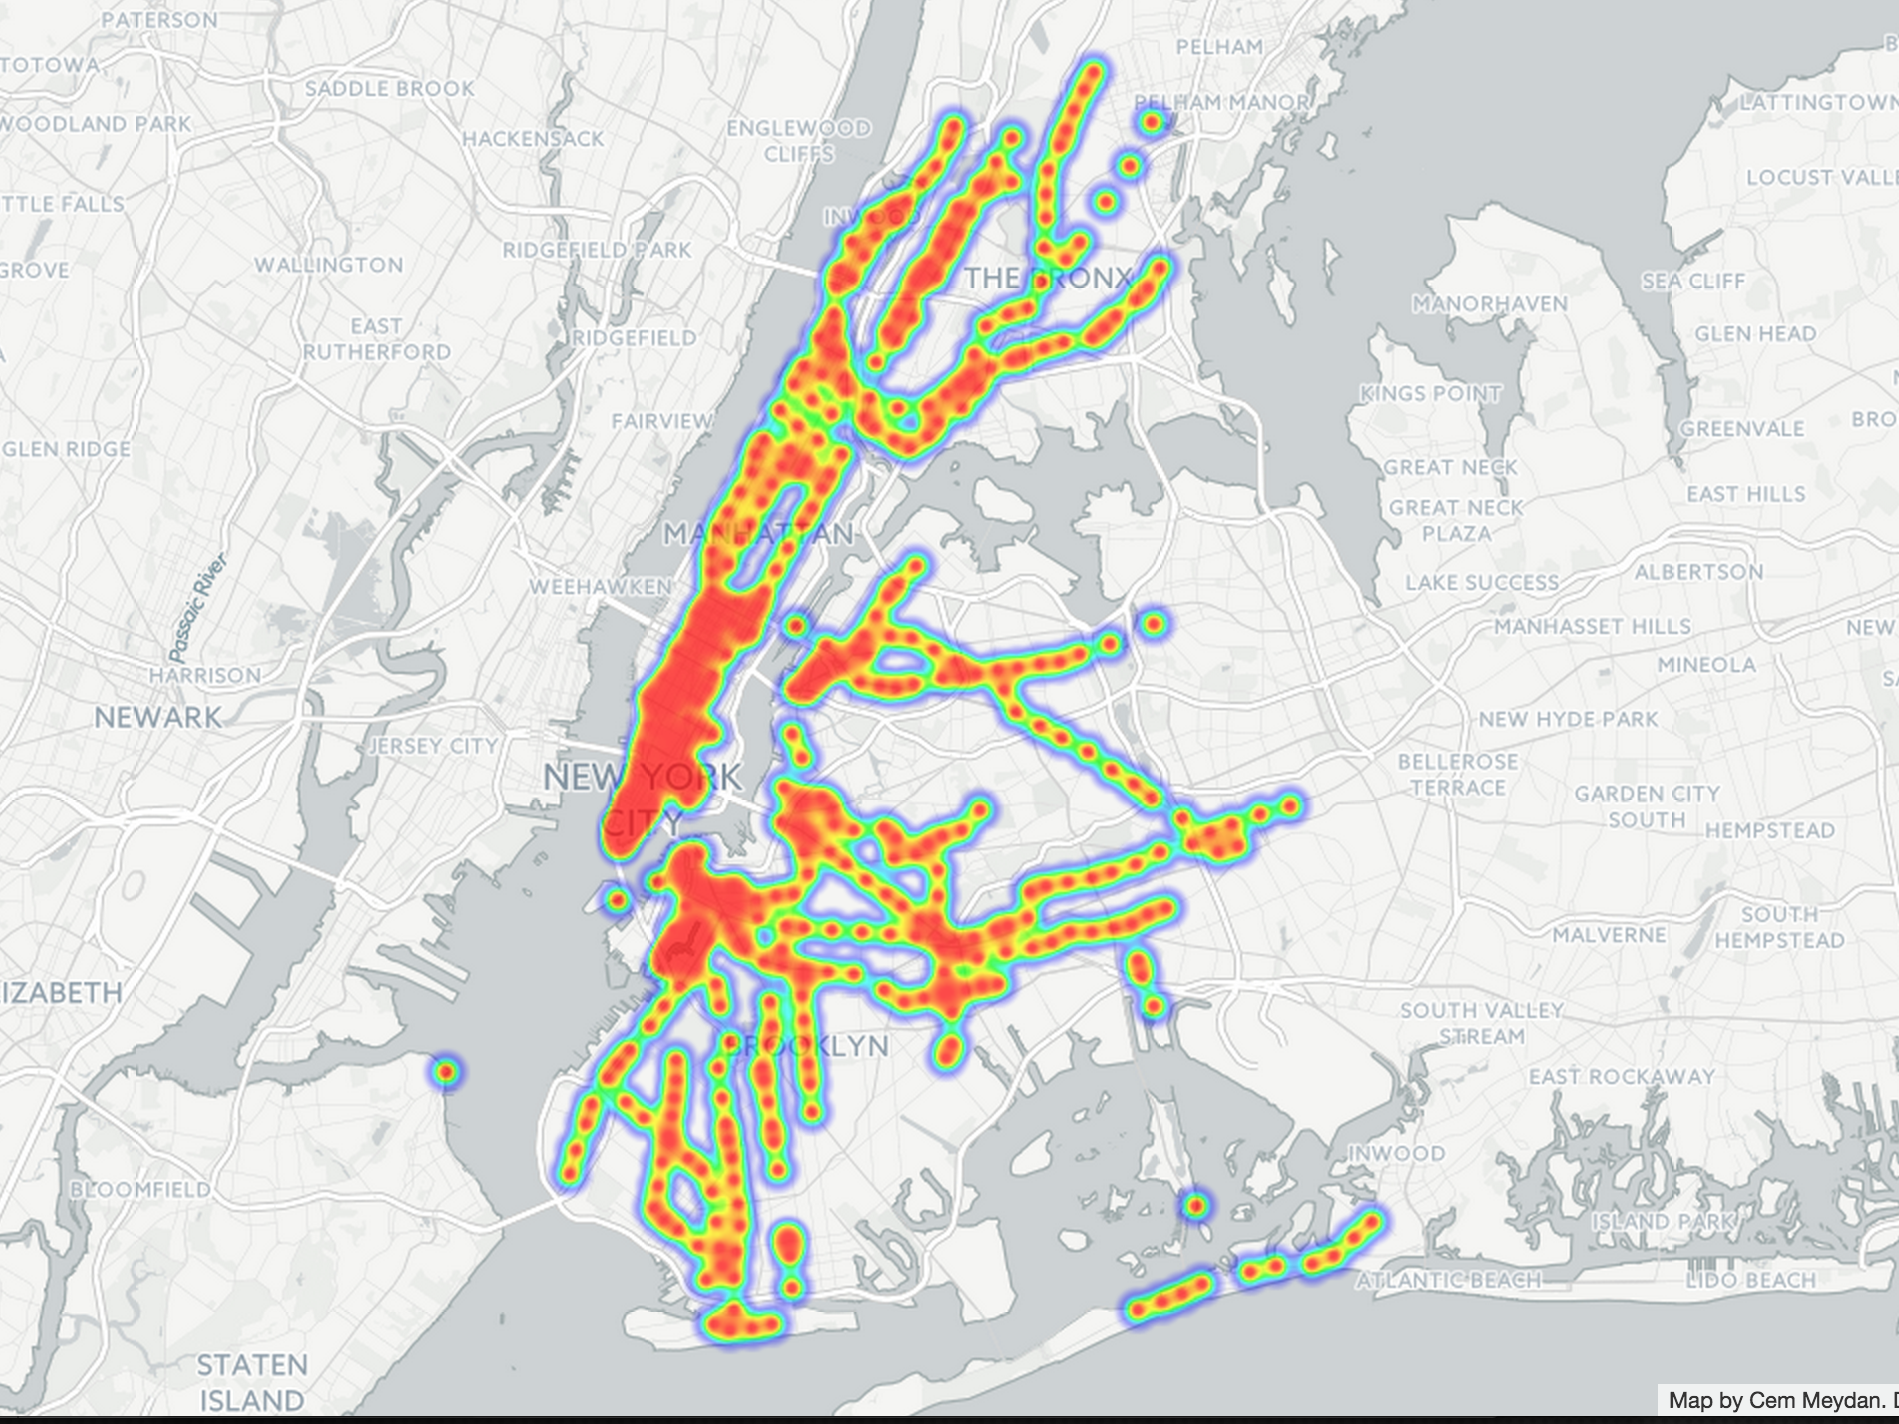 Heat map analysis of bacteria in New York City subway stations.